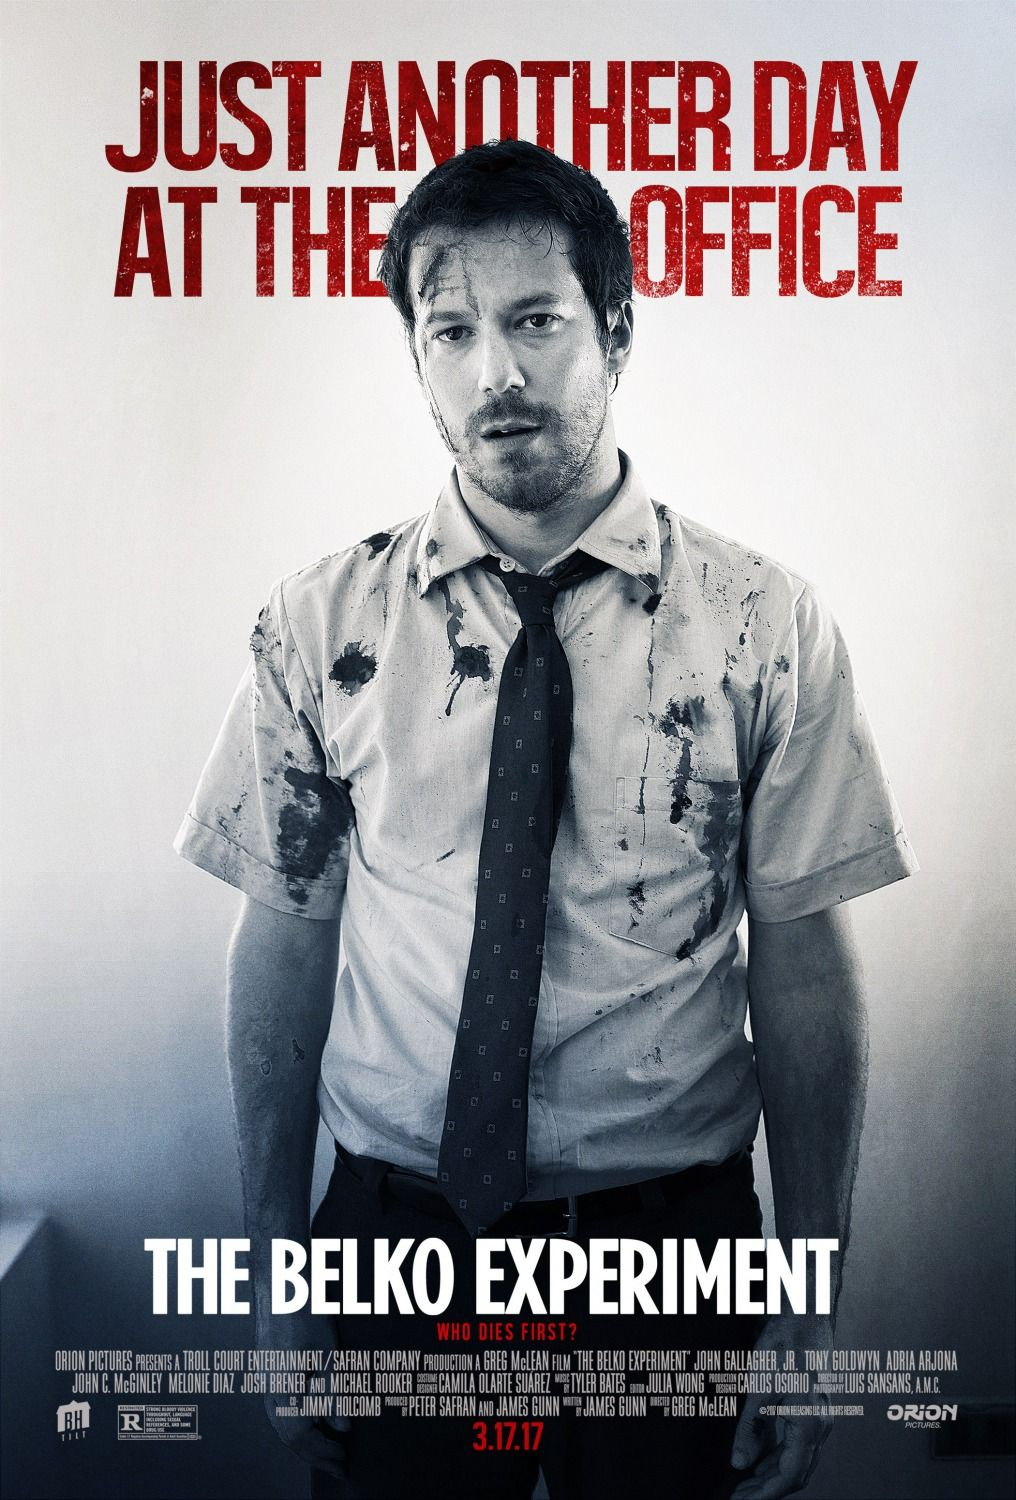 Return to the main poster page for The Belko Experiment